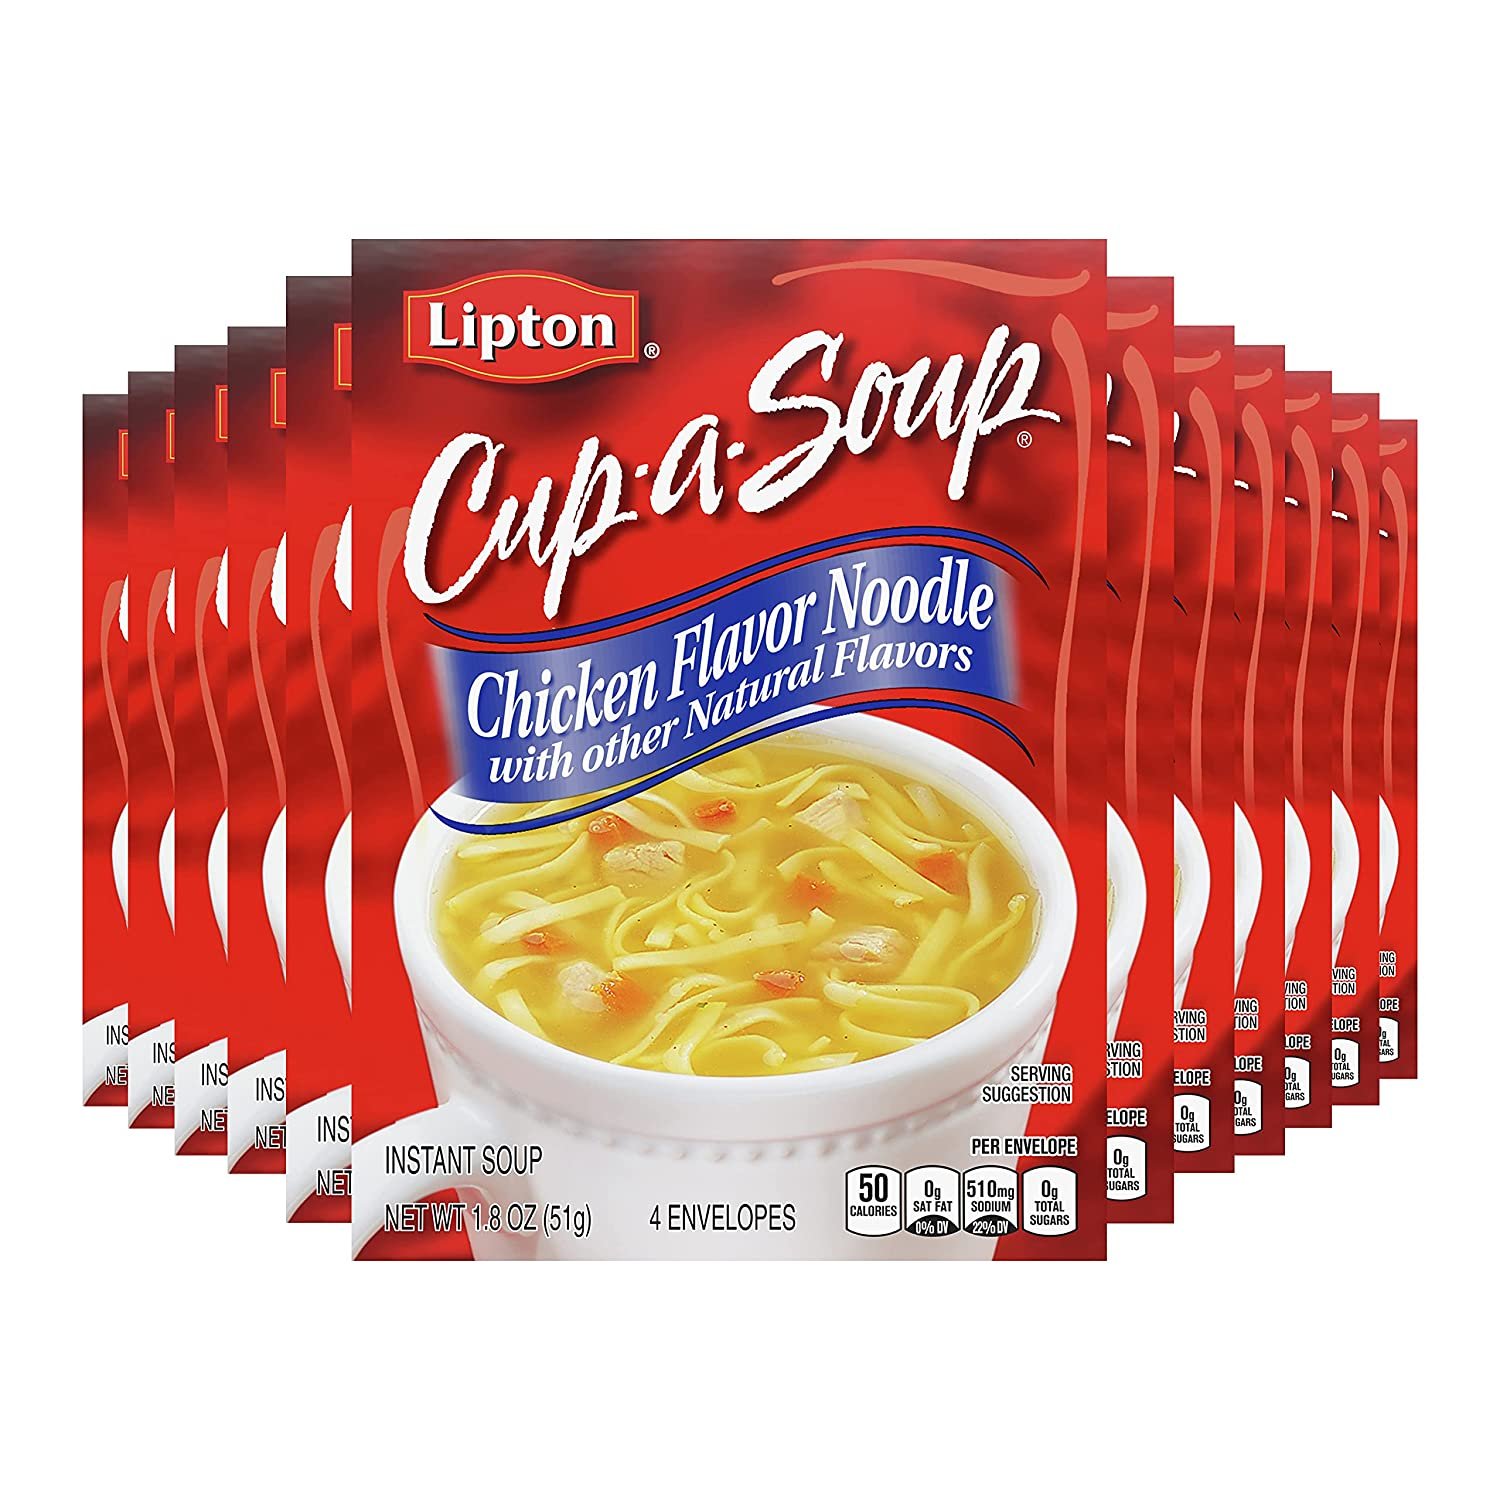 Max 83% OFF Lipton Cup-a-Soup Instant Soup For a Chicken No Warm New York Mall of Cup